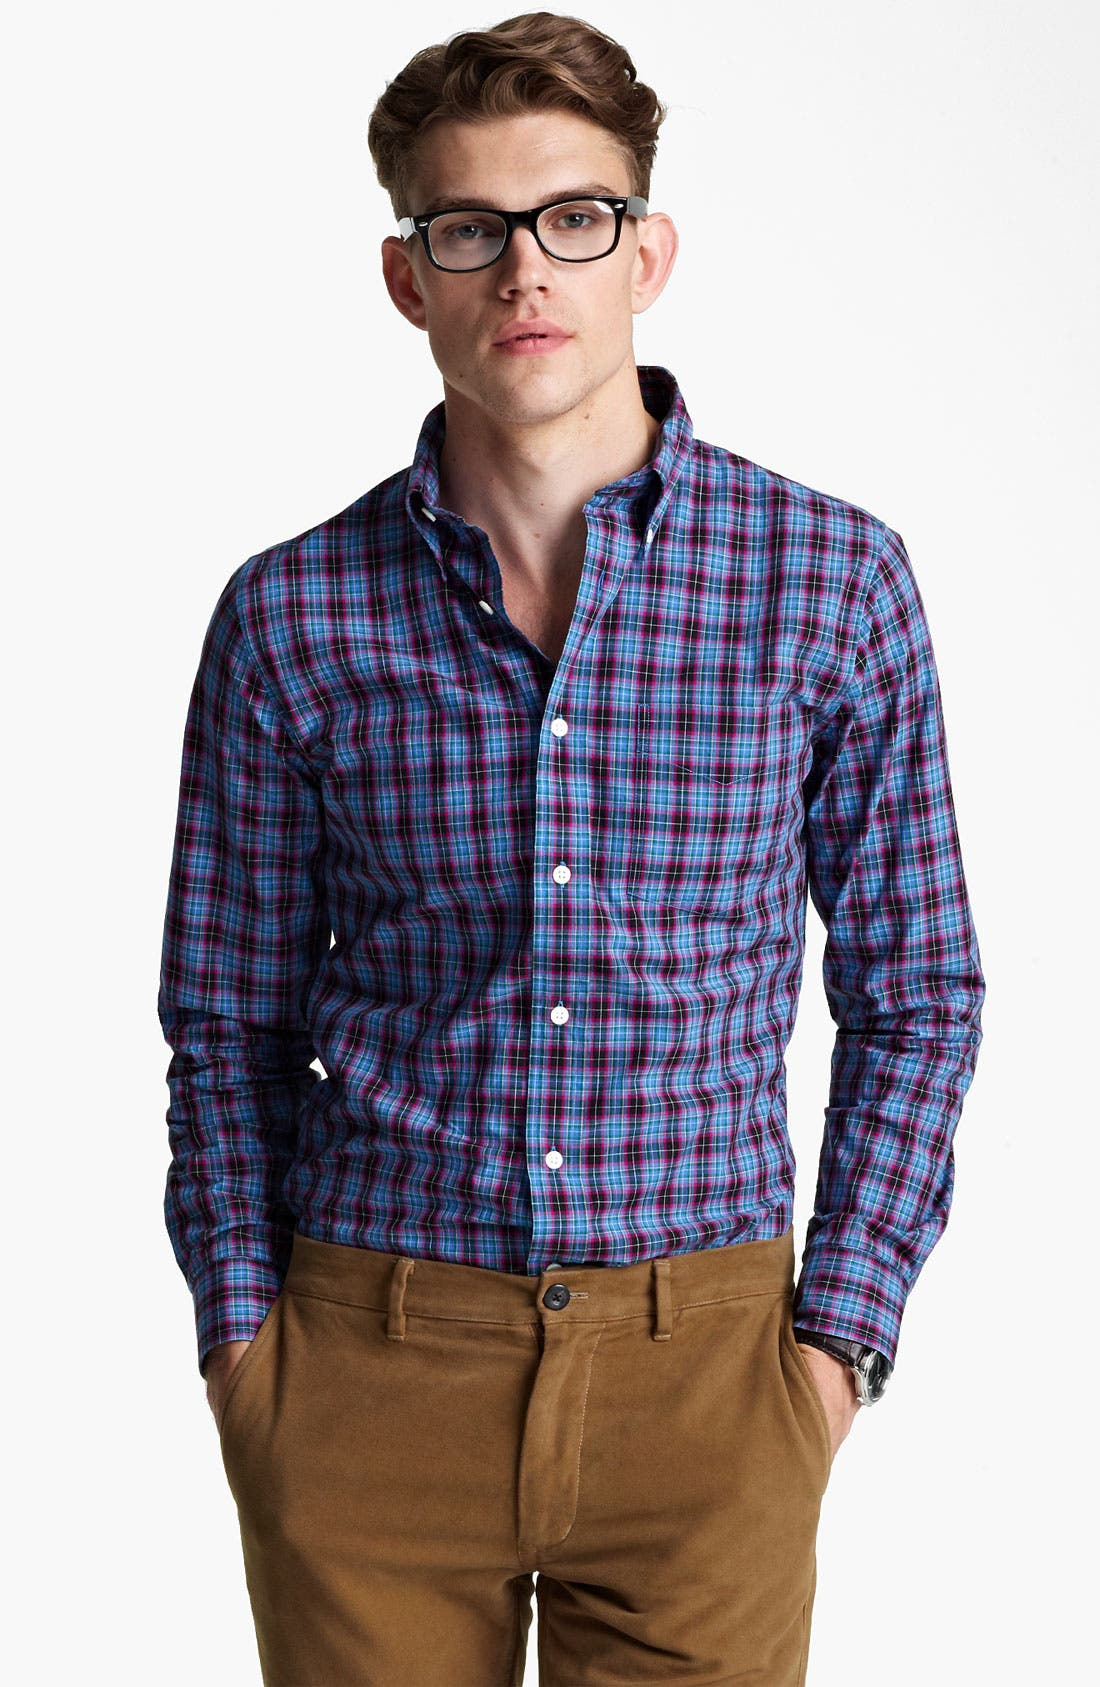 Alternate Image 1 Selected - Jack Spade 'Arnet' Check Woven Shirt